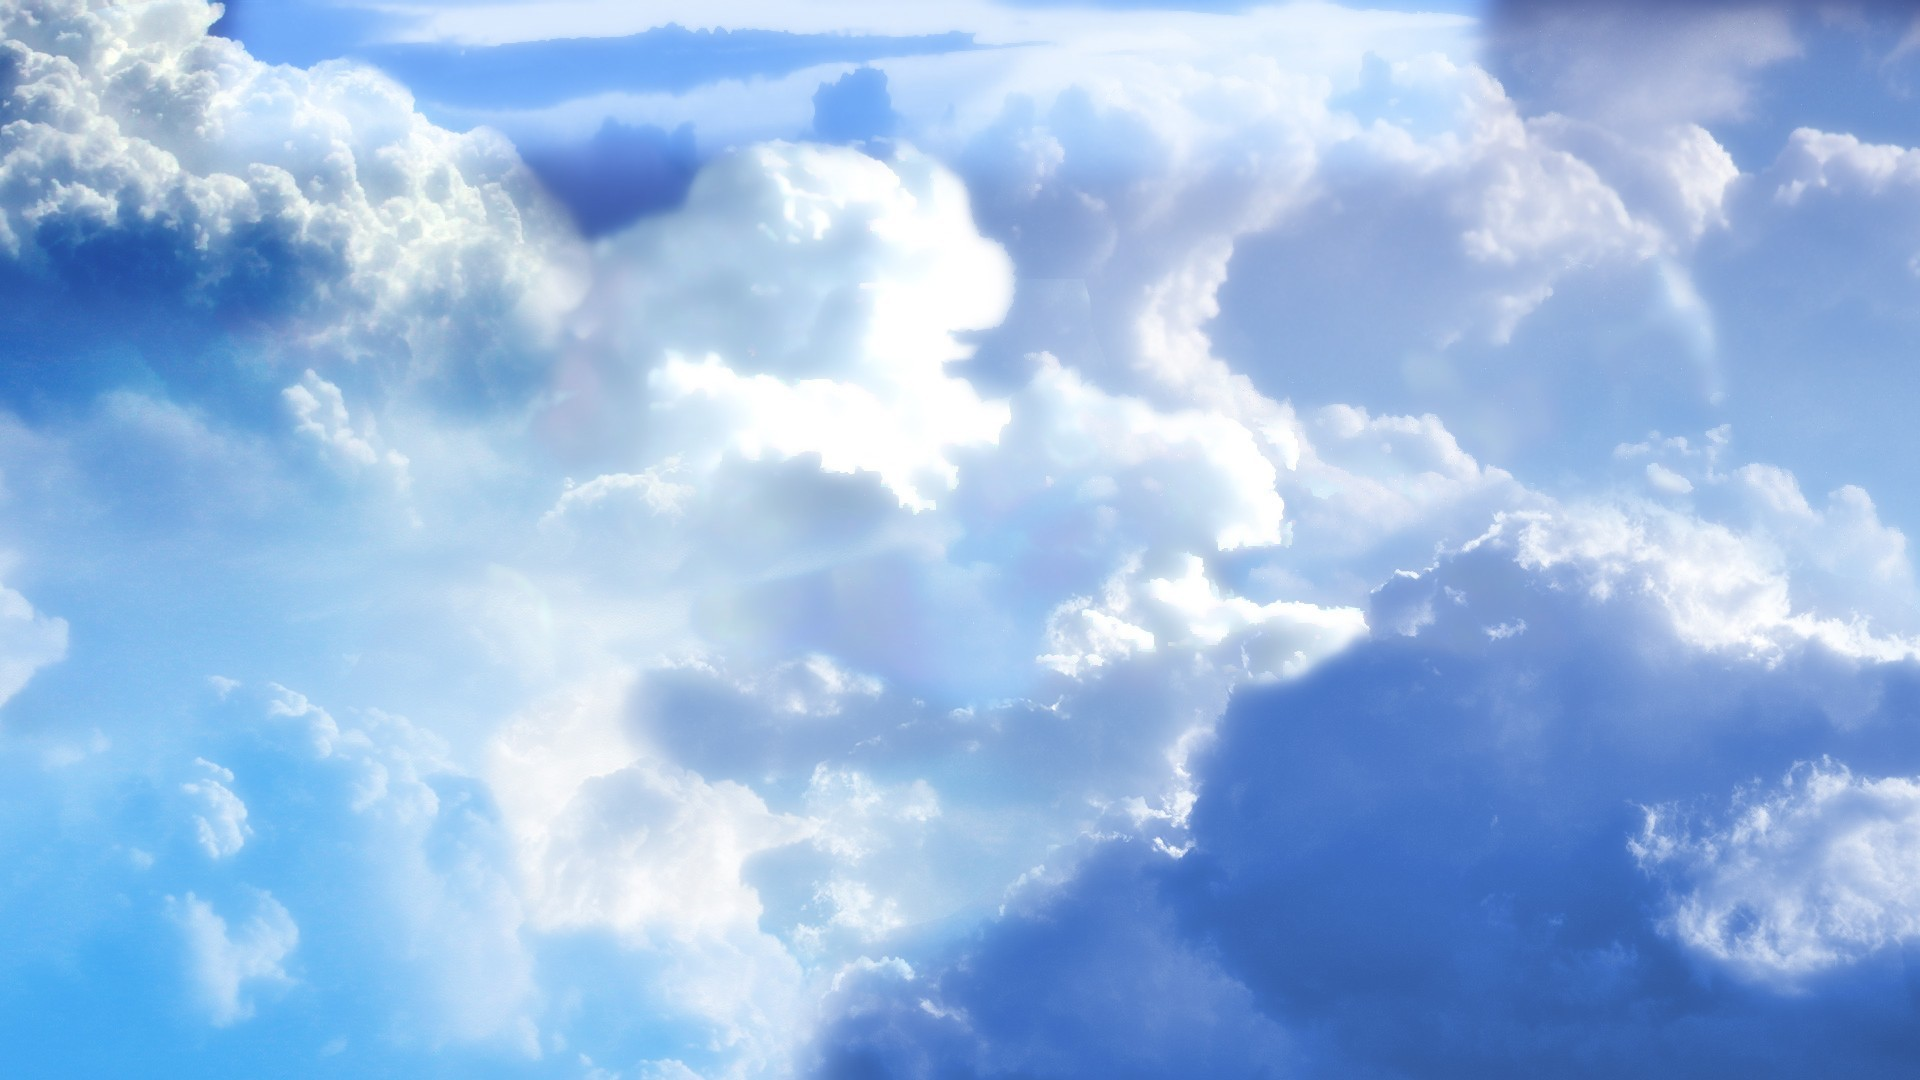 Sky and Clouds Wallpaper 1920x1080